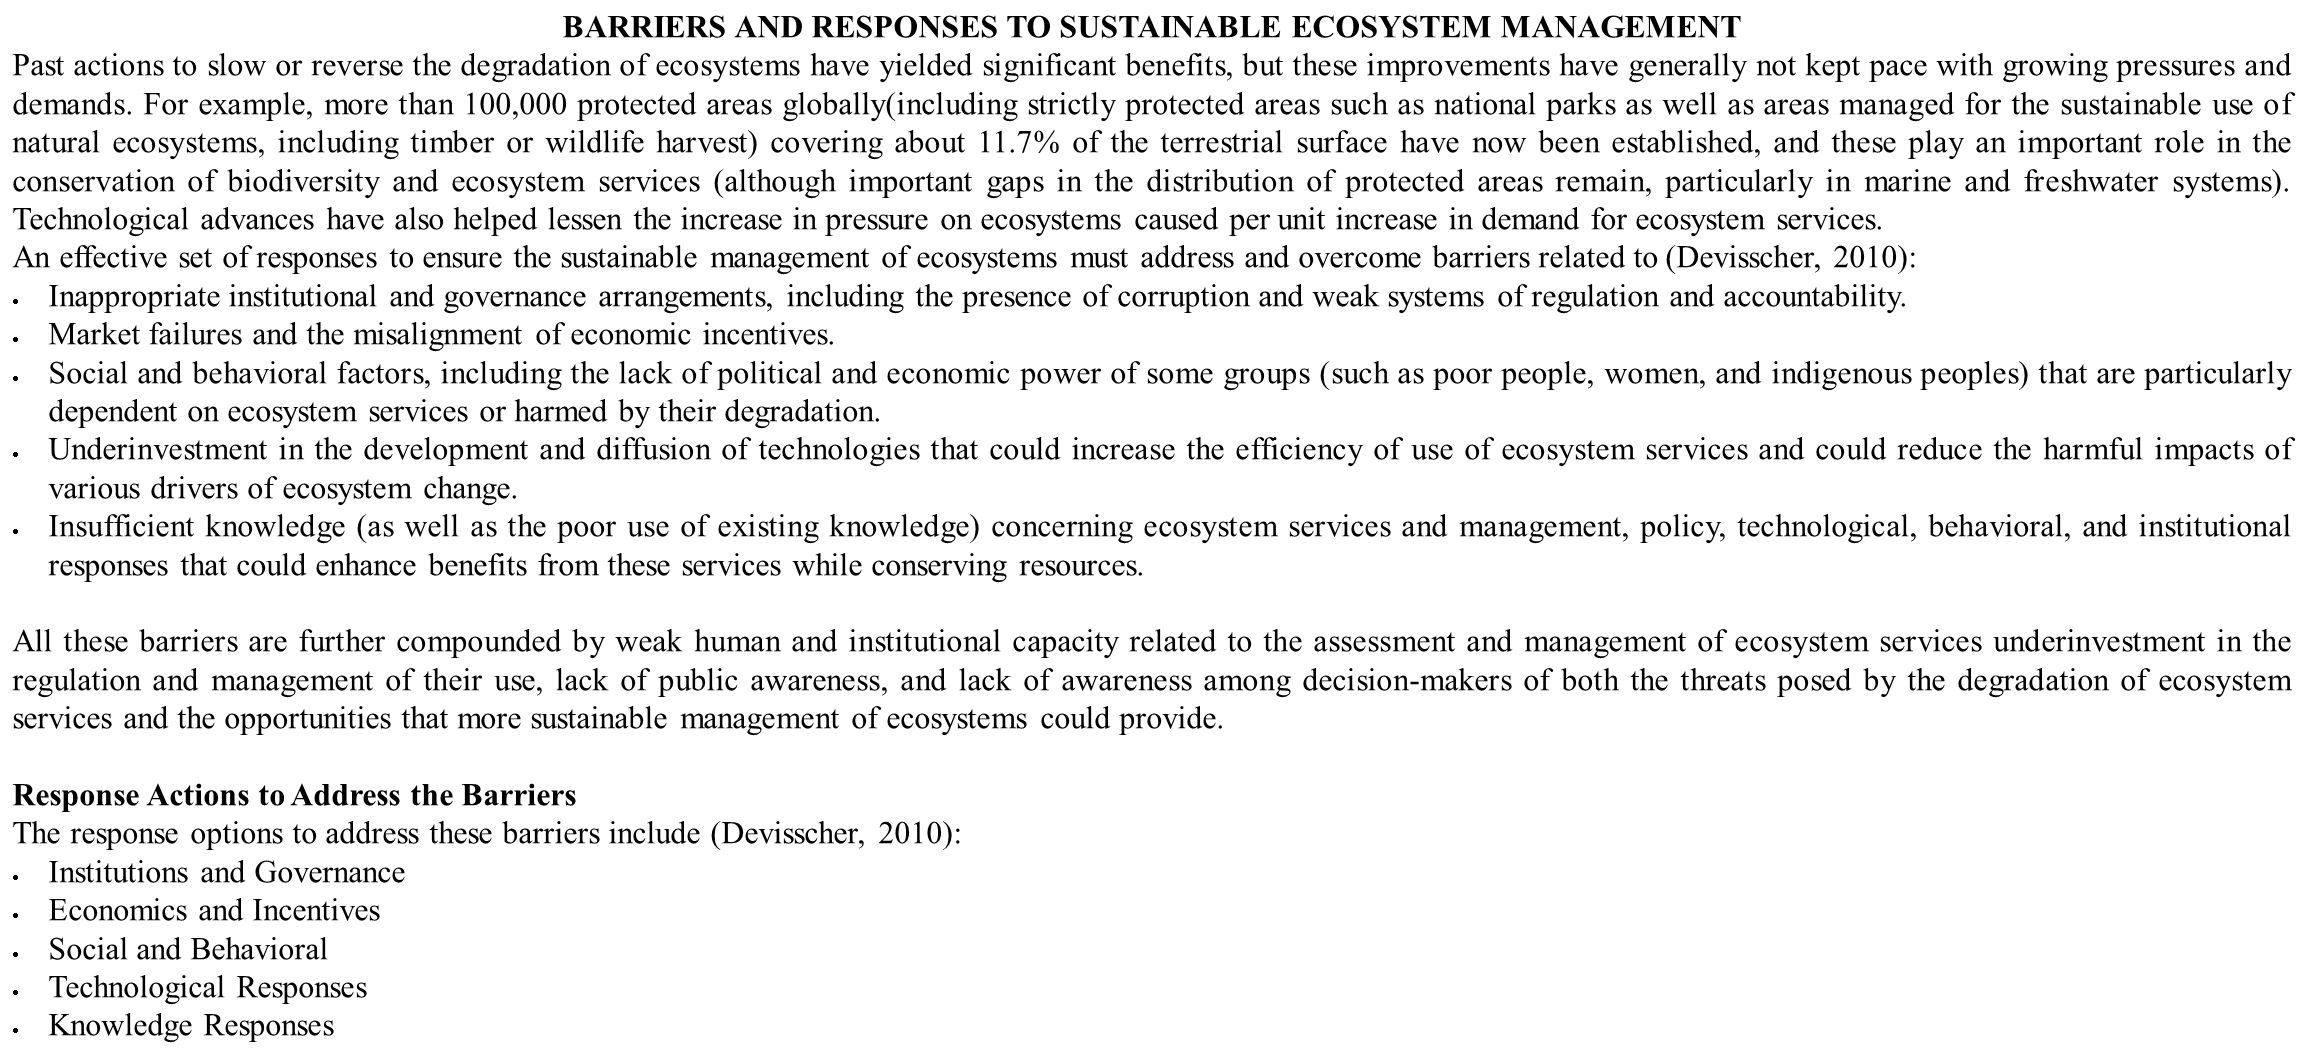 BARRIERS AND RESPONSES TO SUSTAINABLE ECOSYSTEM MANAGEMENT